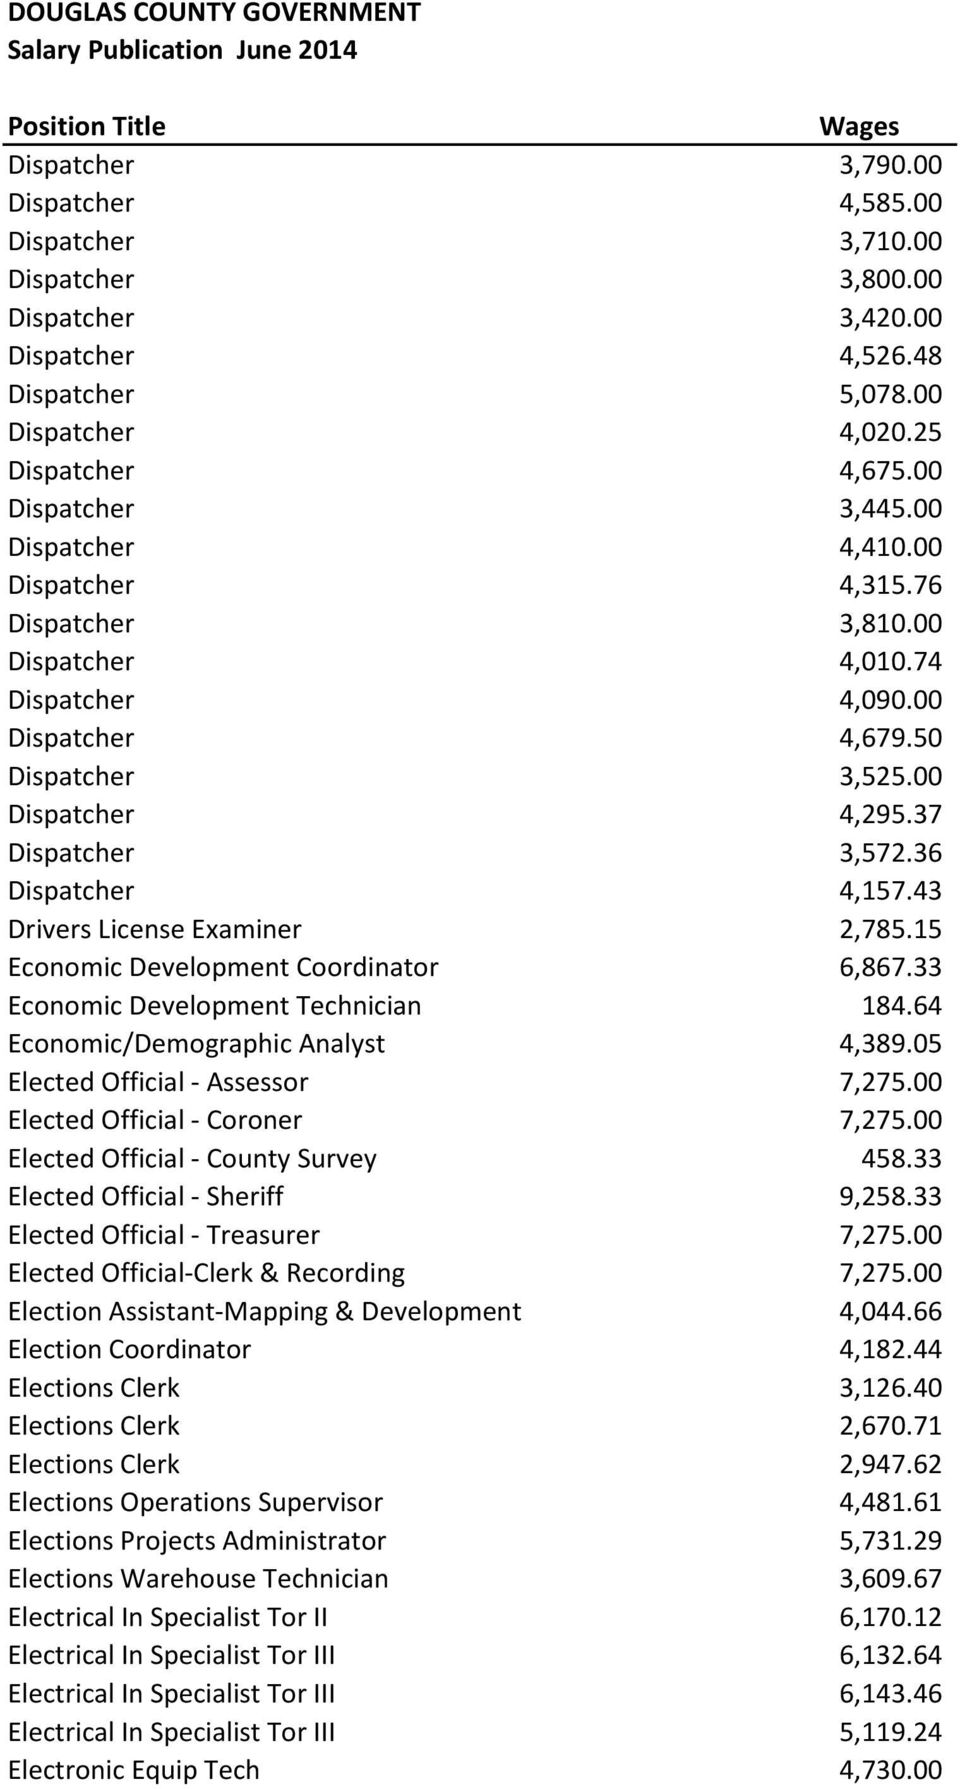 43 Drivers License Examiner 2,785.15 Economic Development Coordinator 6,867.33 Economic Development Technician 184.64 Economic/Demographic Analyst 4,389.05 Elected Official - Assessor 7,275.